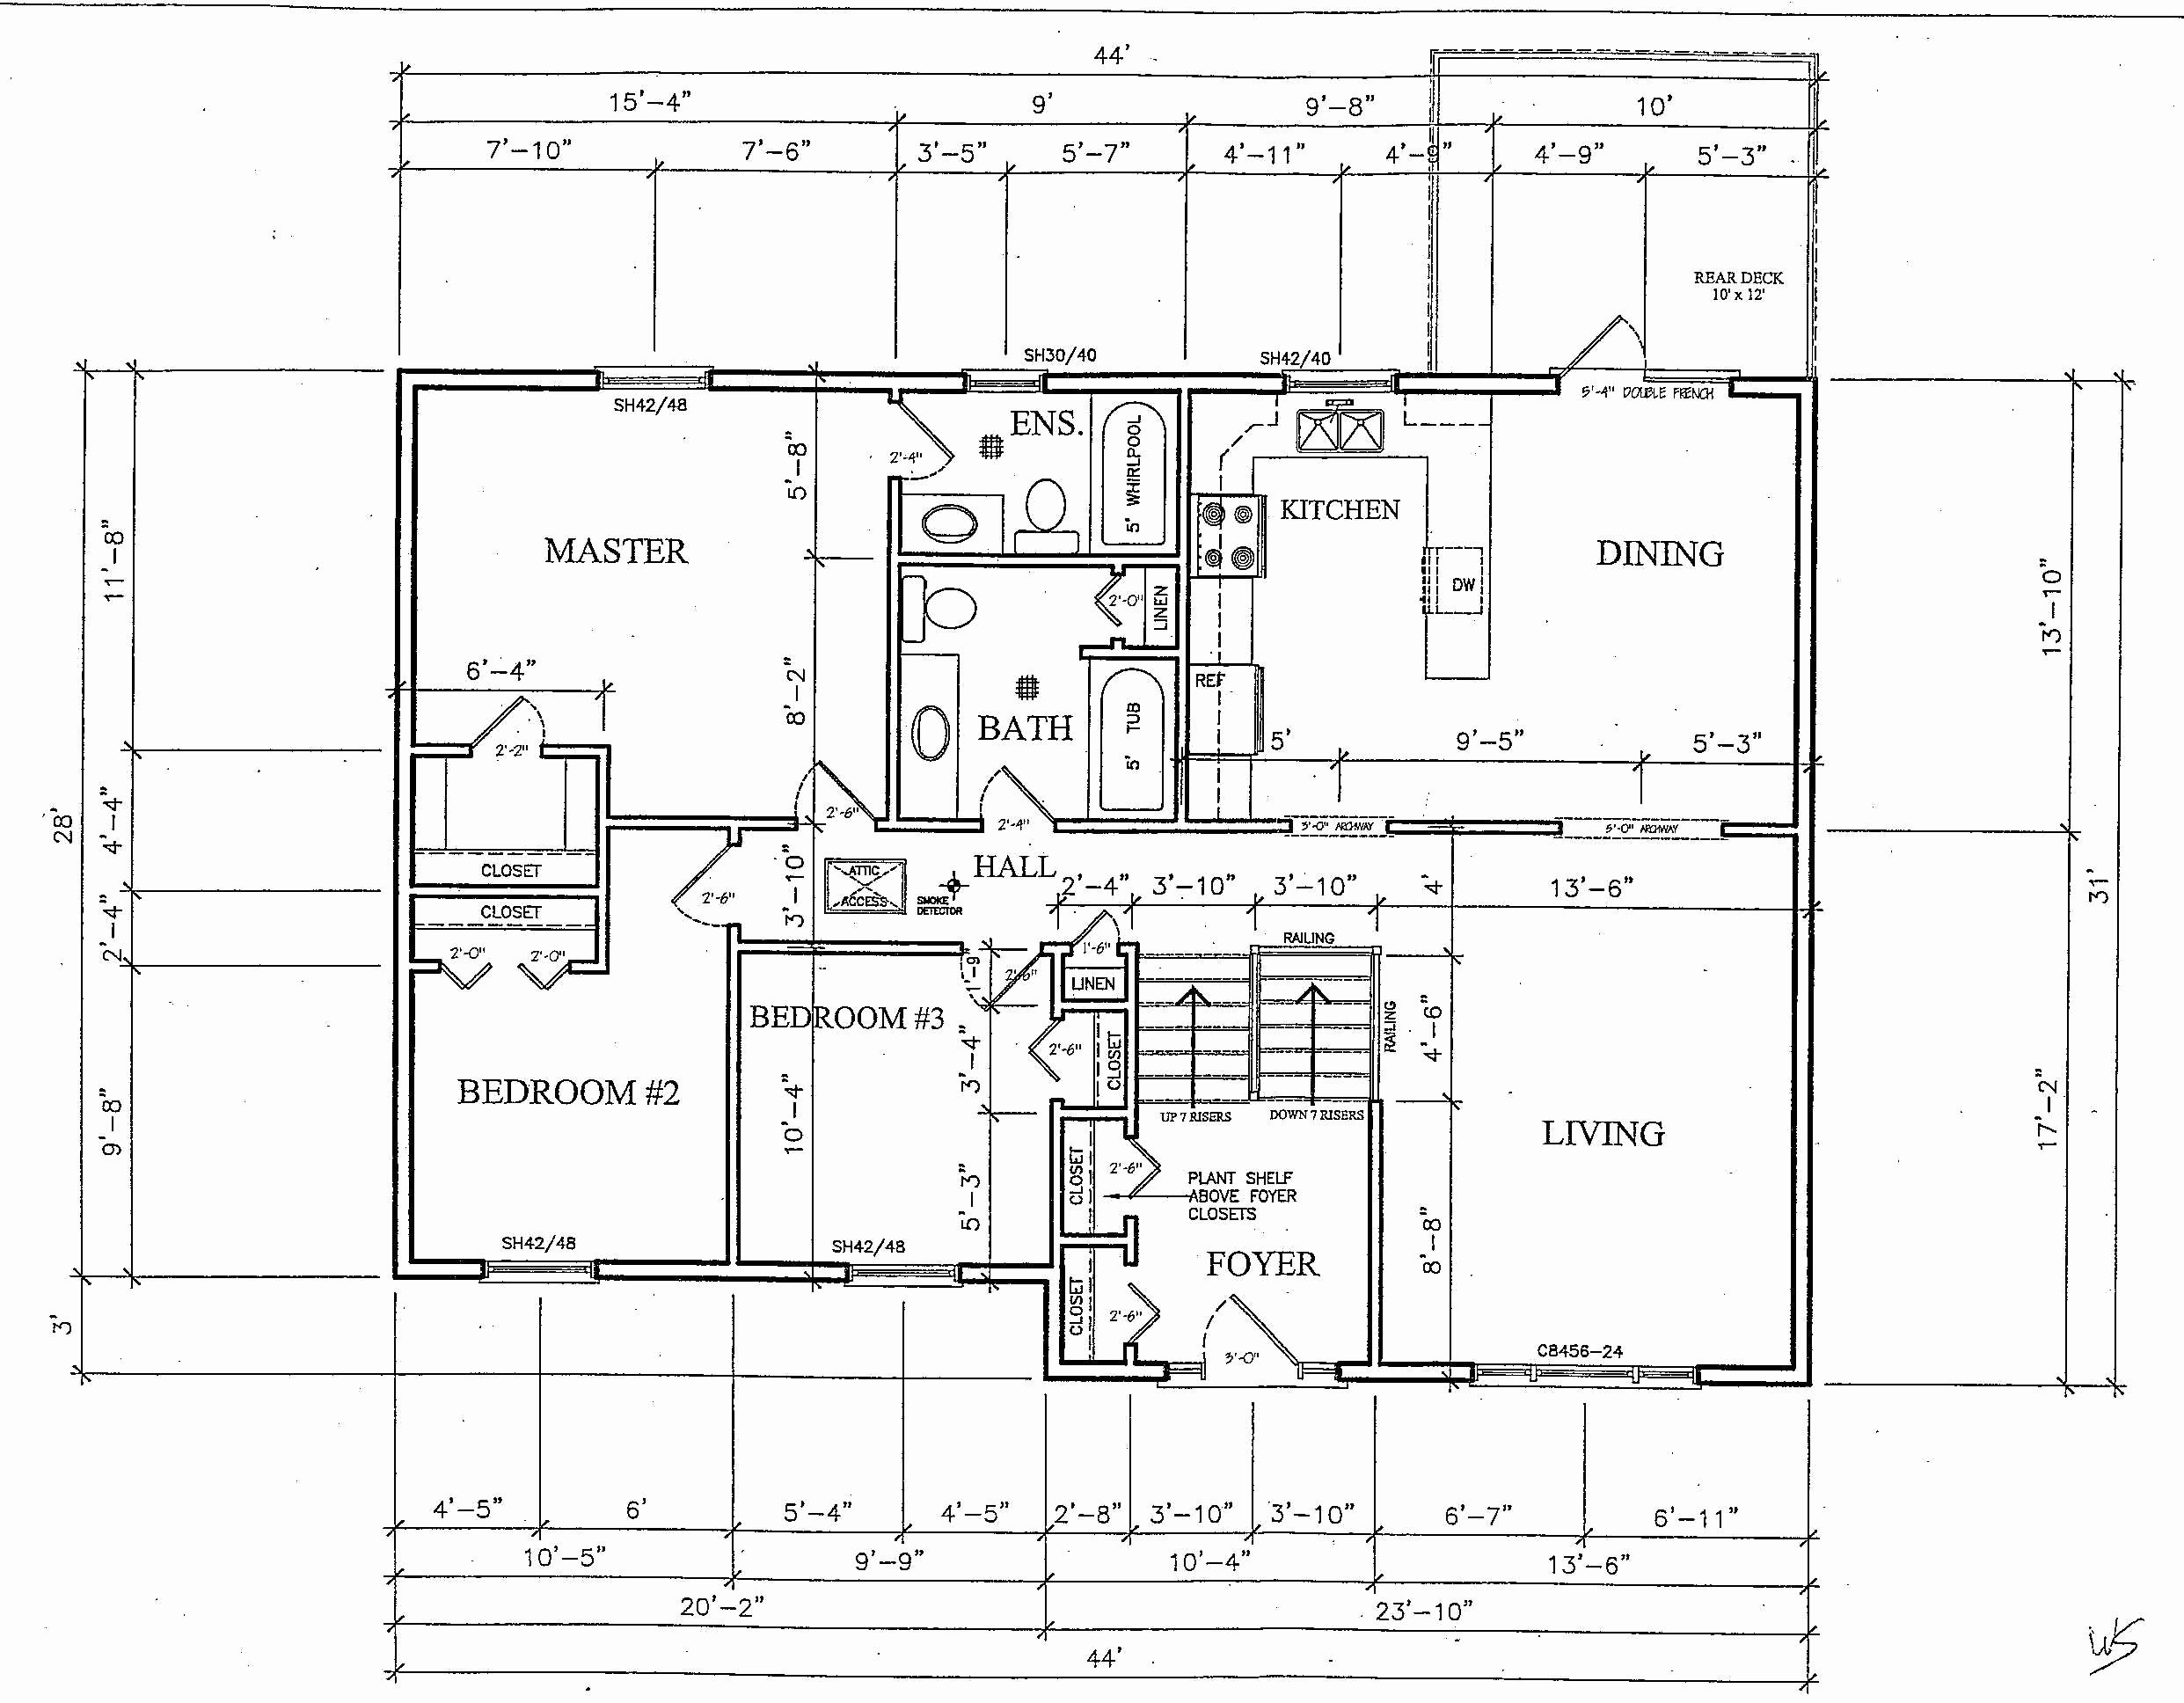 Autocad Floor Plan Template Best Of Autocad Simple and Class House Floor Plans Learning Books